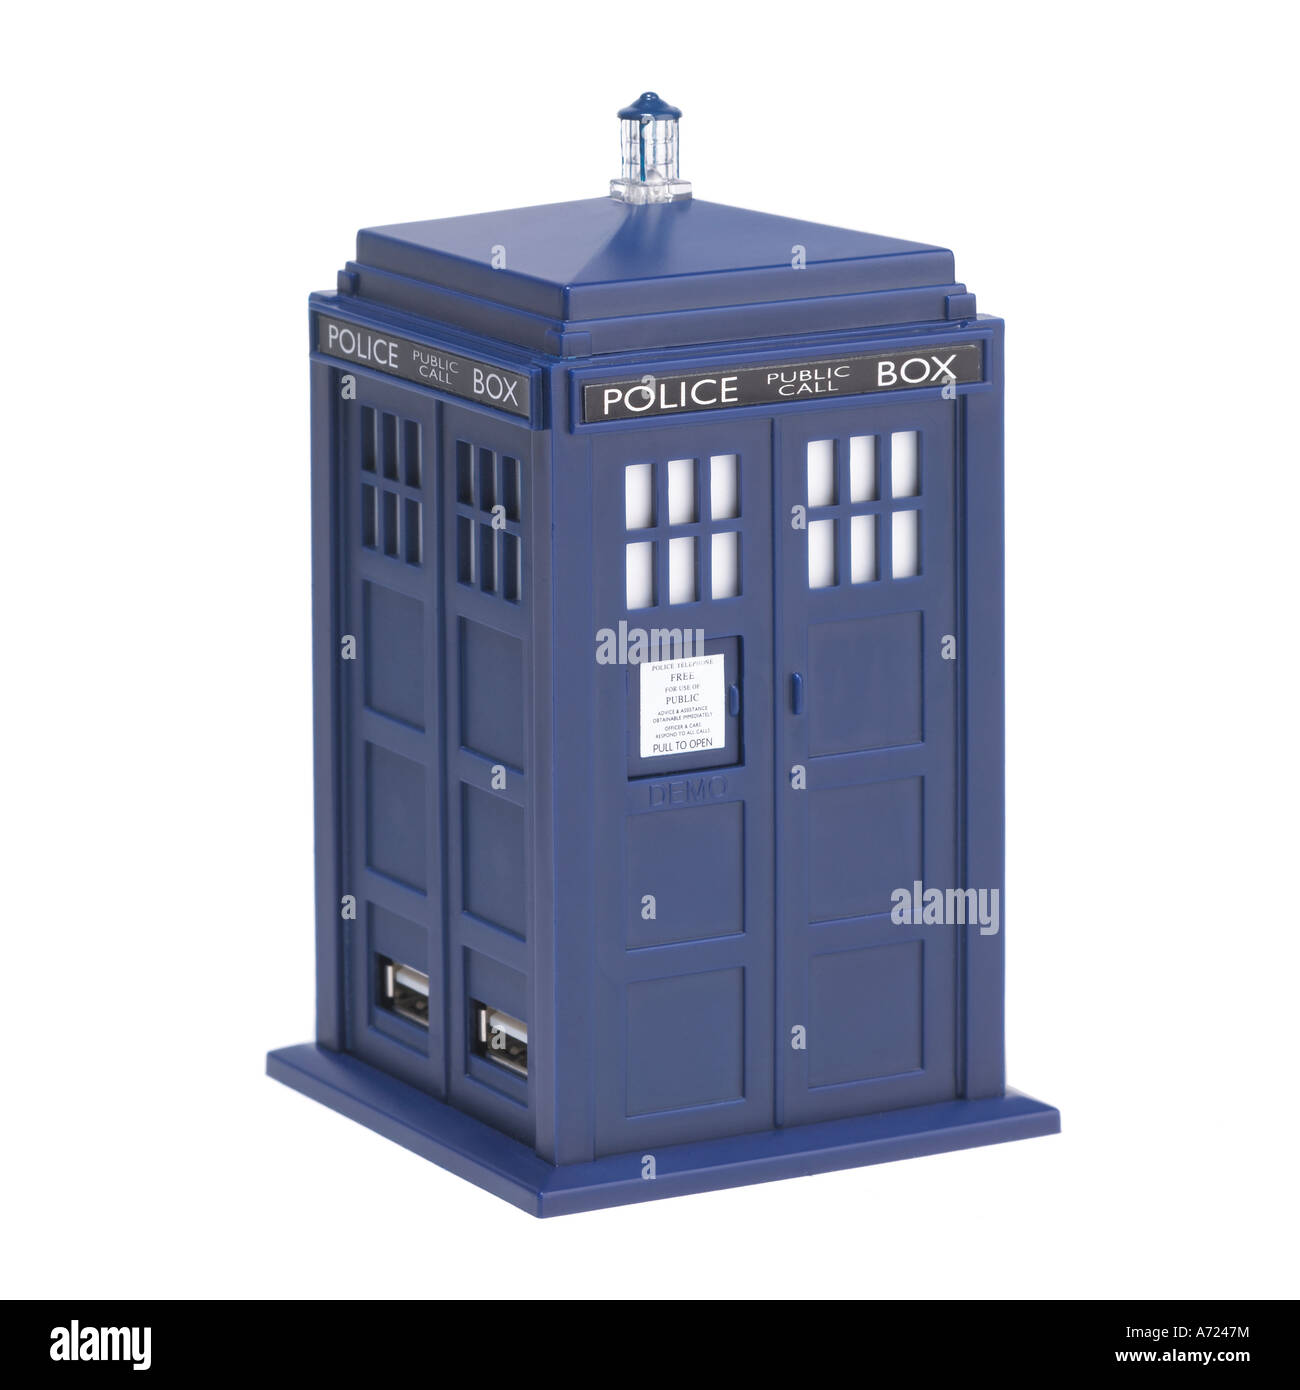 Doctor Who Tardis Police Public call Box - Stock Image